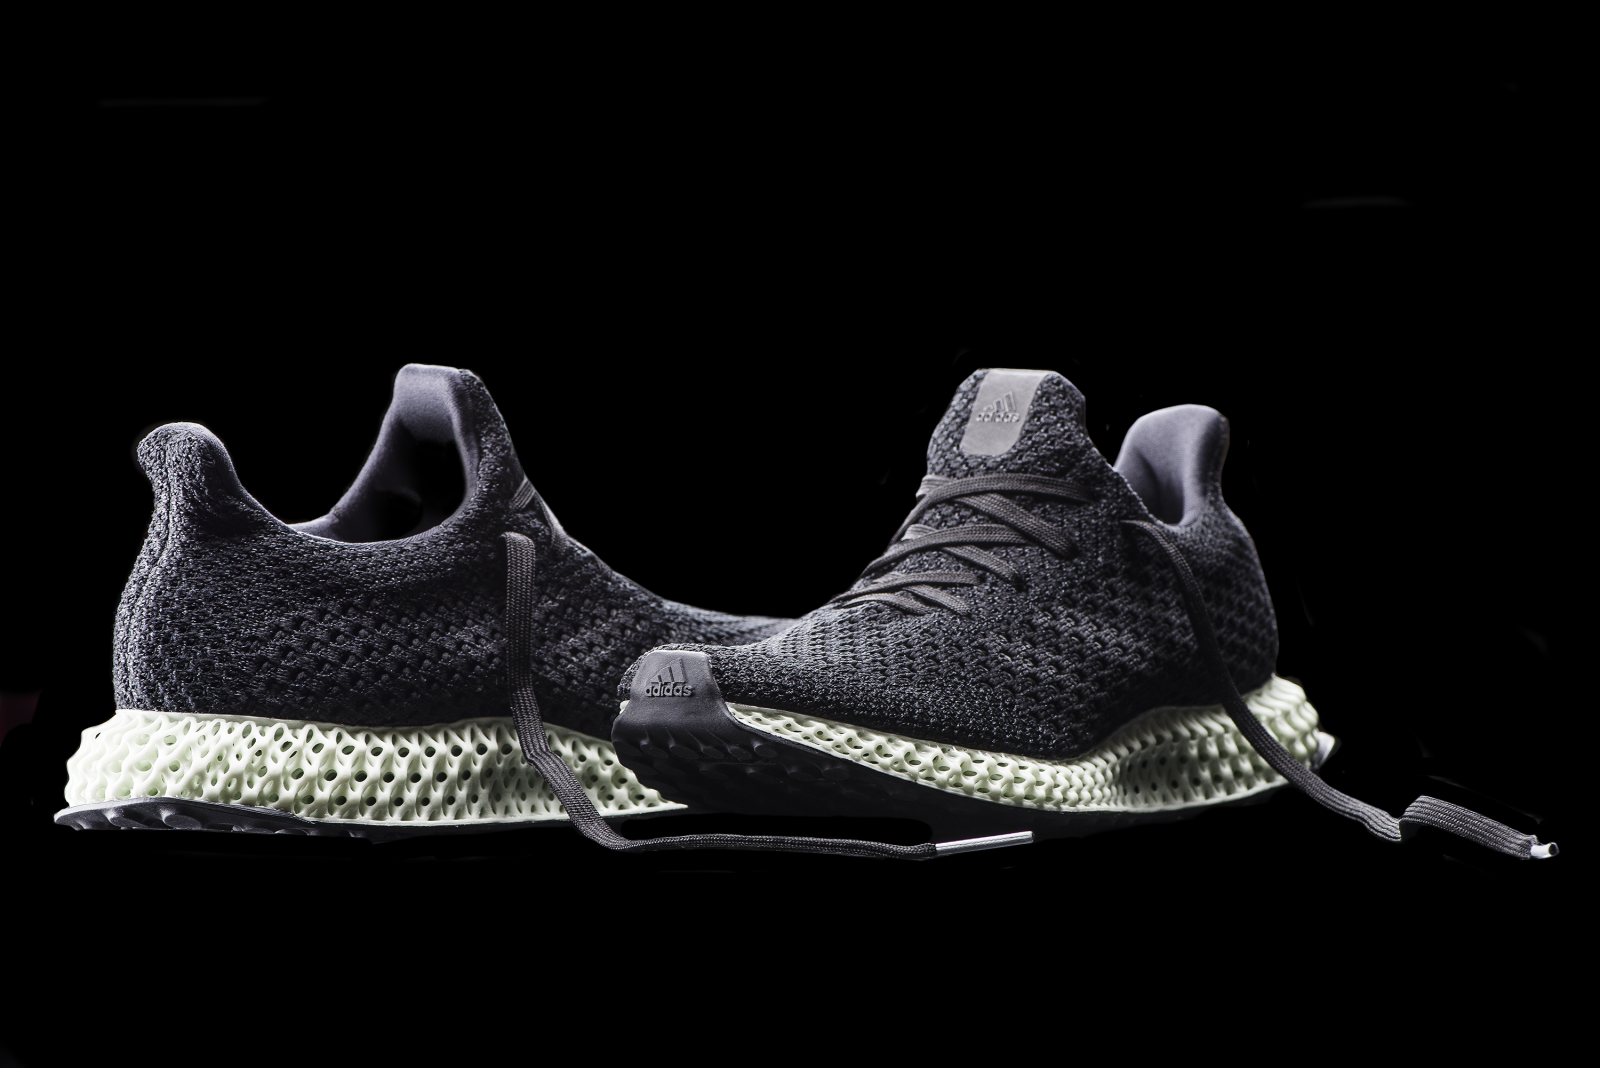 Say hello to the FutureCraft 4D, Adidas' first mass ...